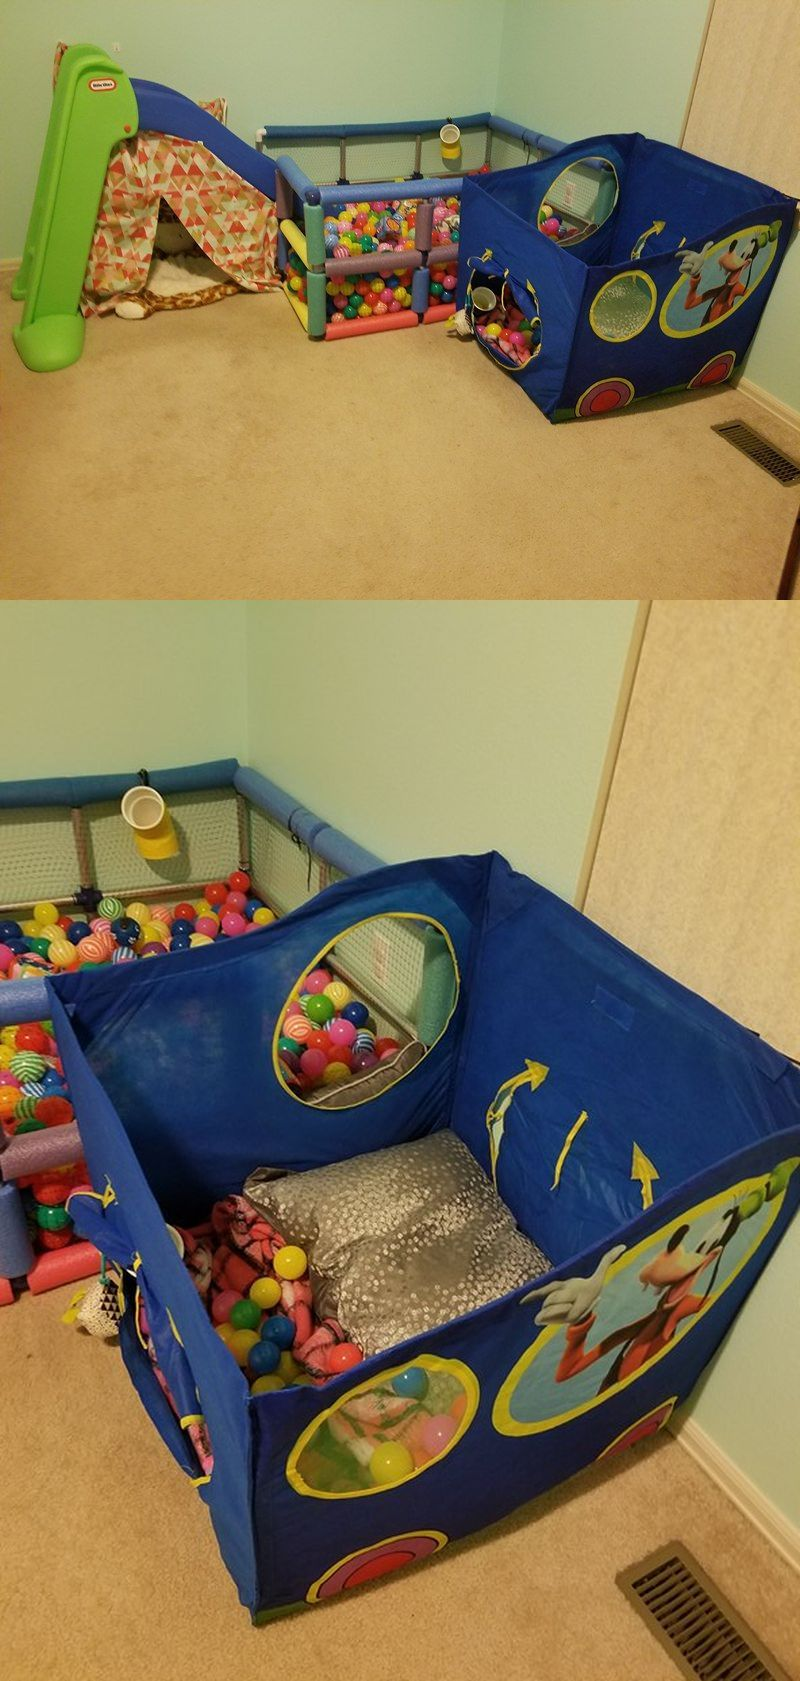 Our ball pen/ ball pit with PVC pipes and an easy fun exit for our & Our ball pen/ ball pit with PVC pipes and an easy fun exit for our ...